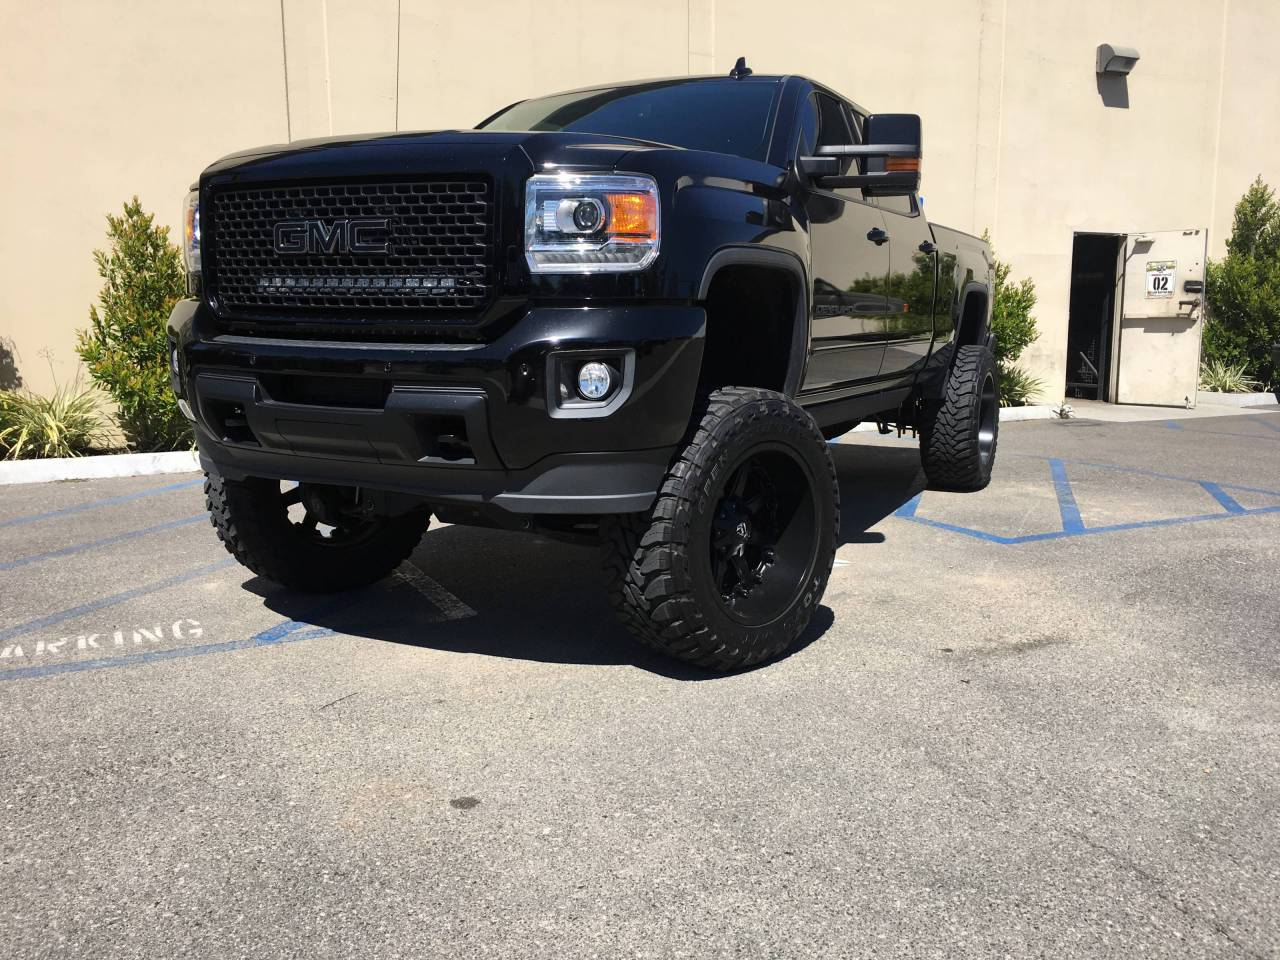 Photo Gallery - Black GMC Denali 2500